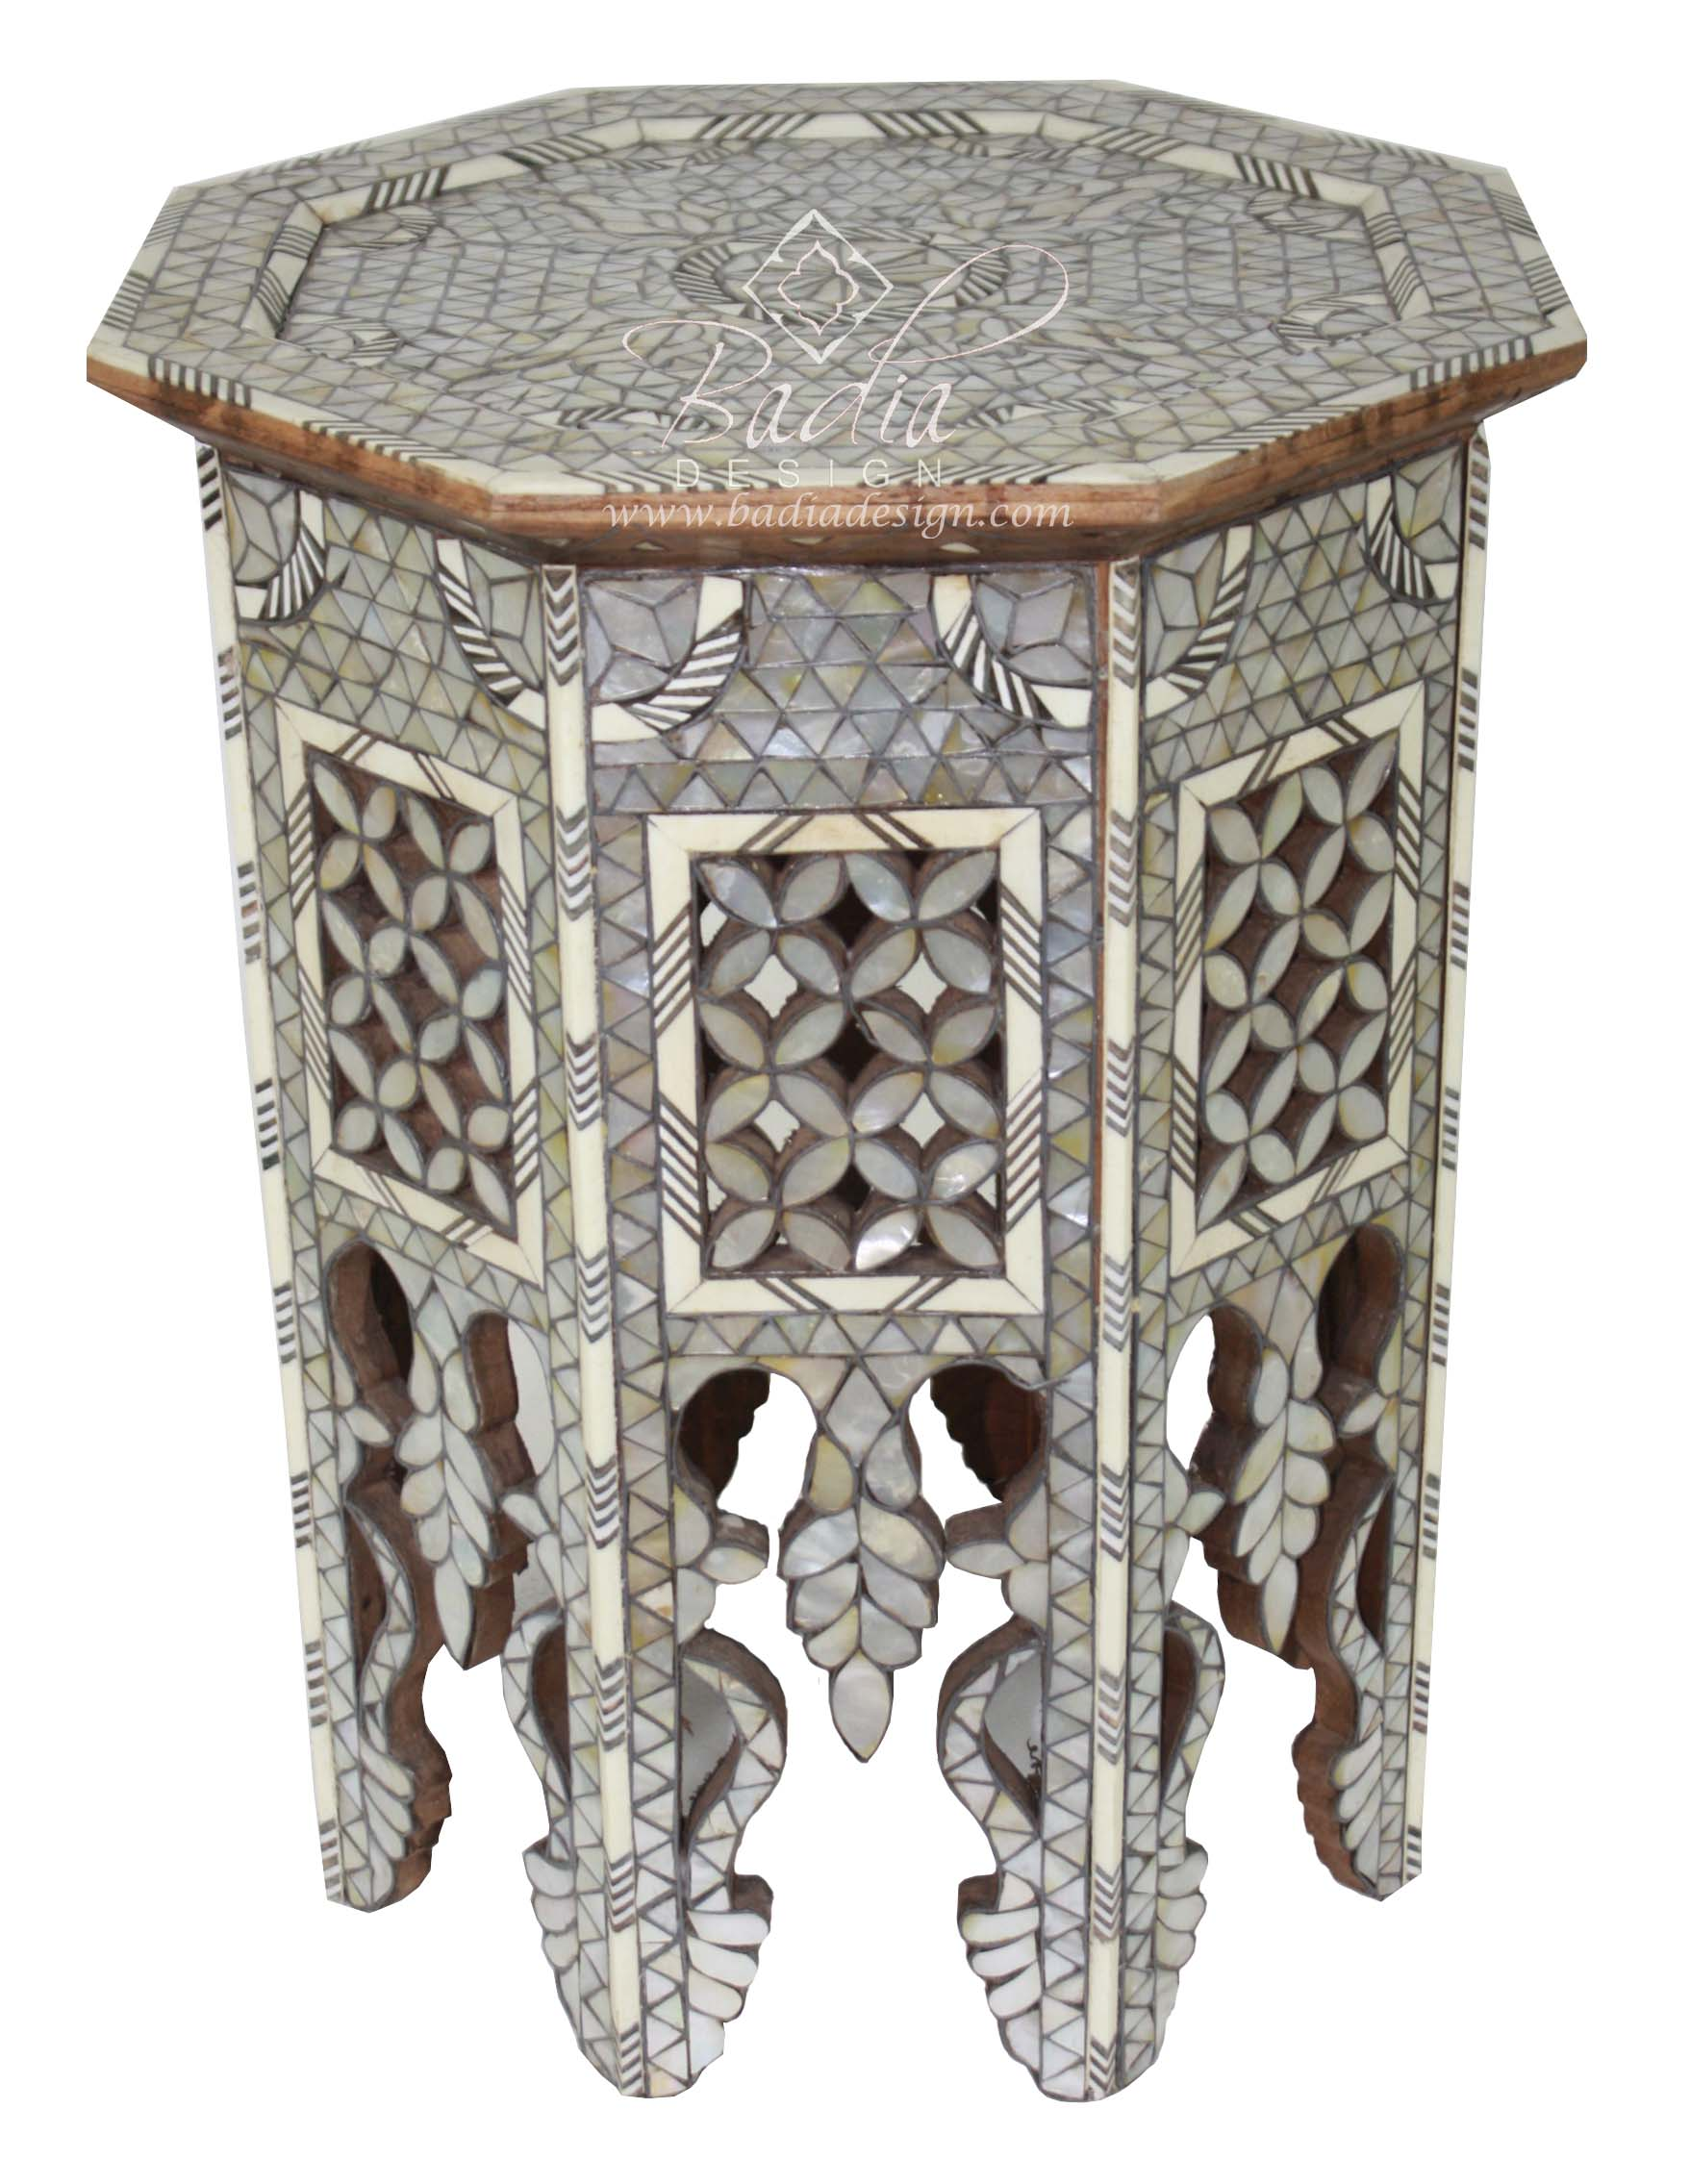 moroccan-white-mother-of-pearl-table-mop-st087-1.jpg